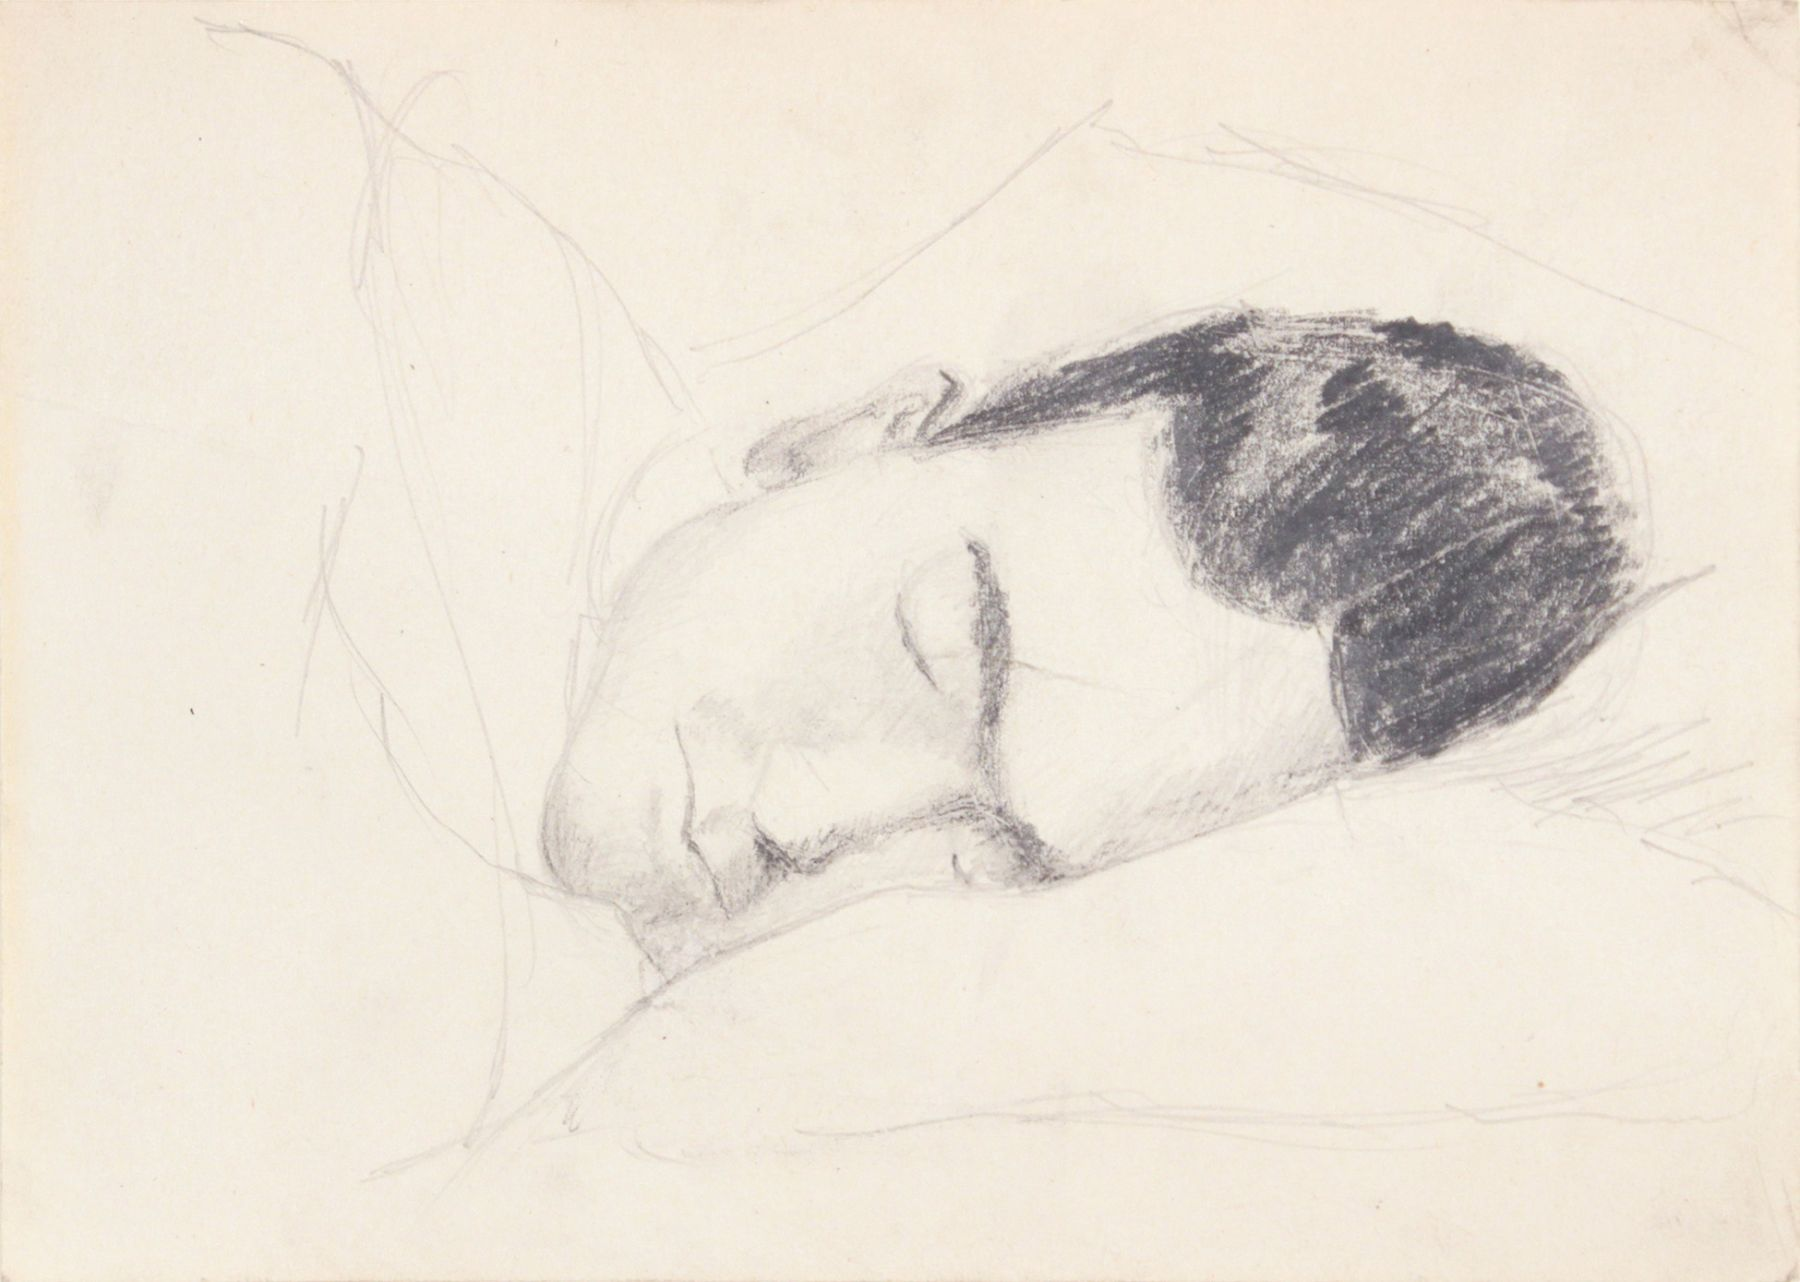 Philip Pearlstein Fellow G.I. Sleeping, 1943